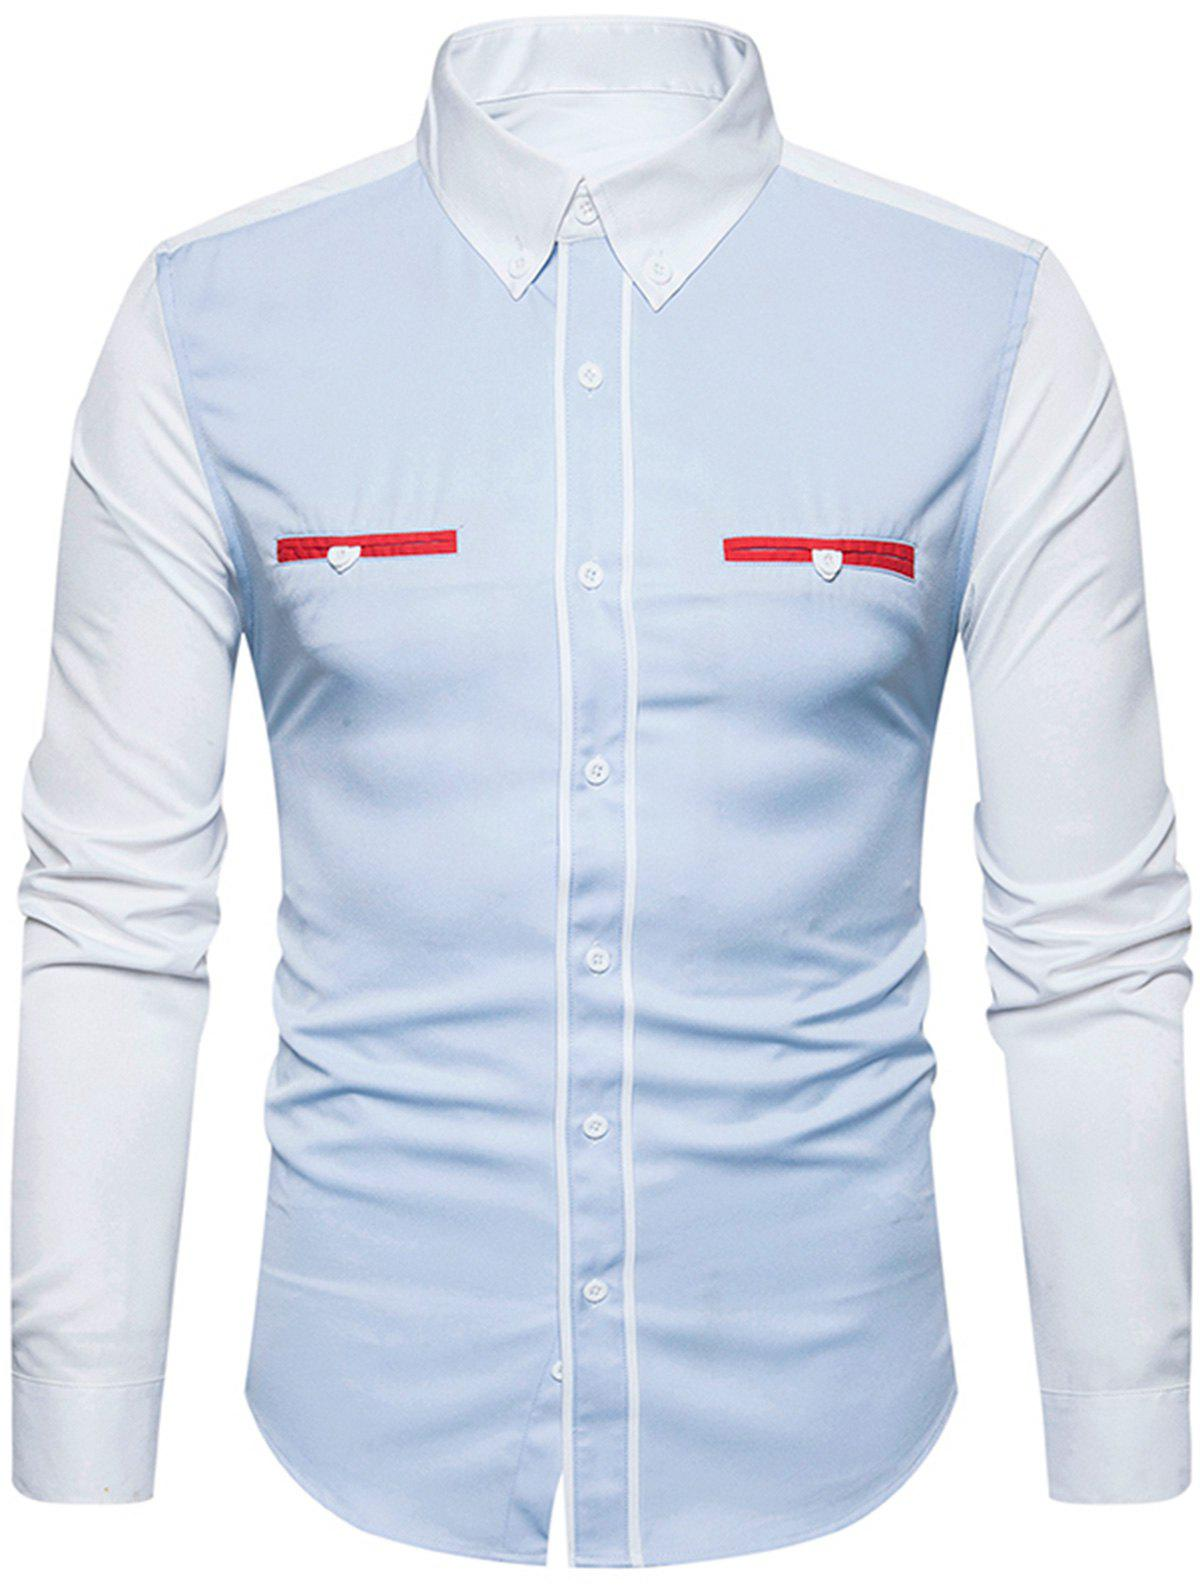 Edging Color Block Panel Button Down Shirt - Bleu Léger M